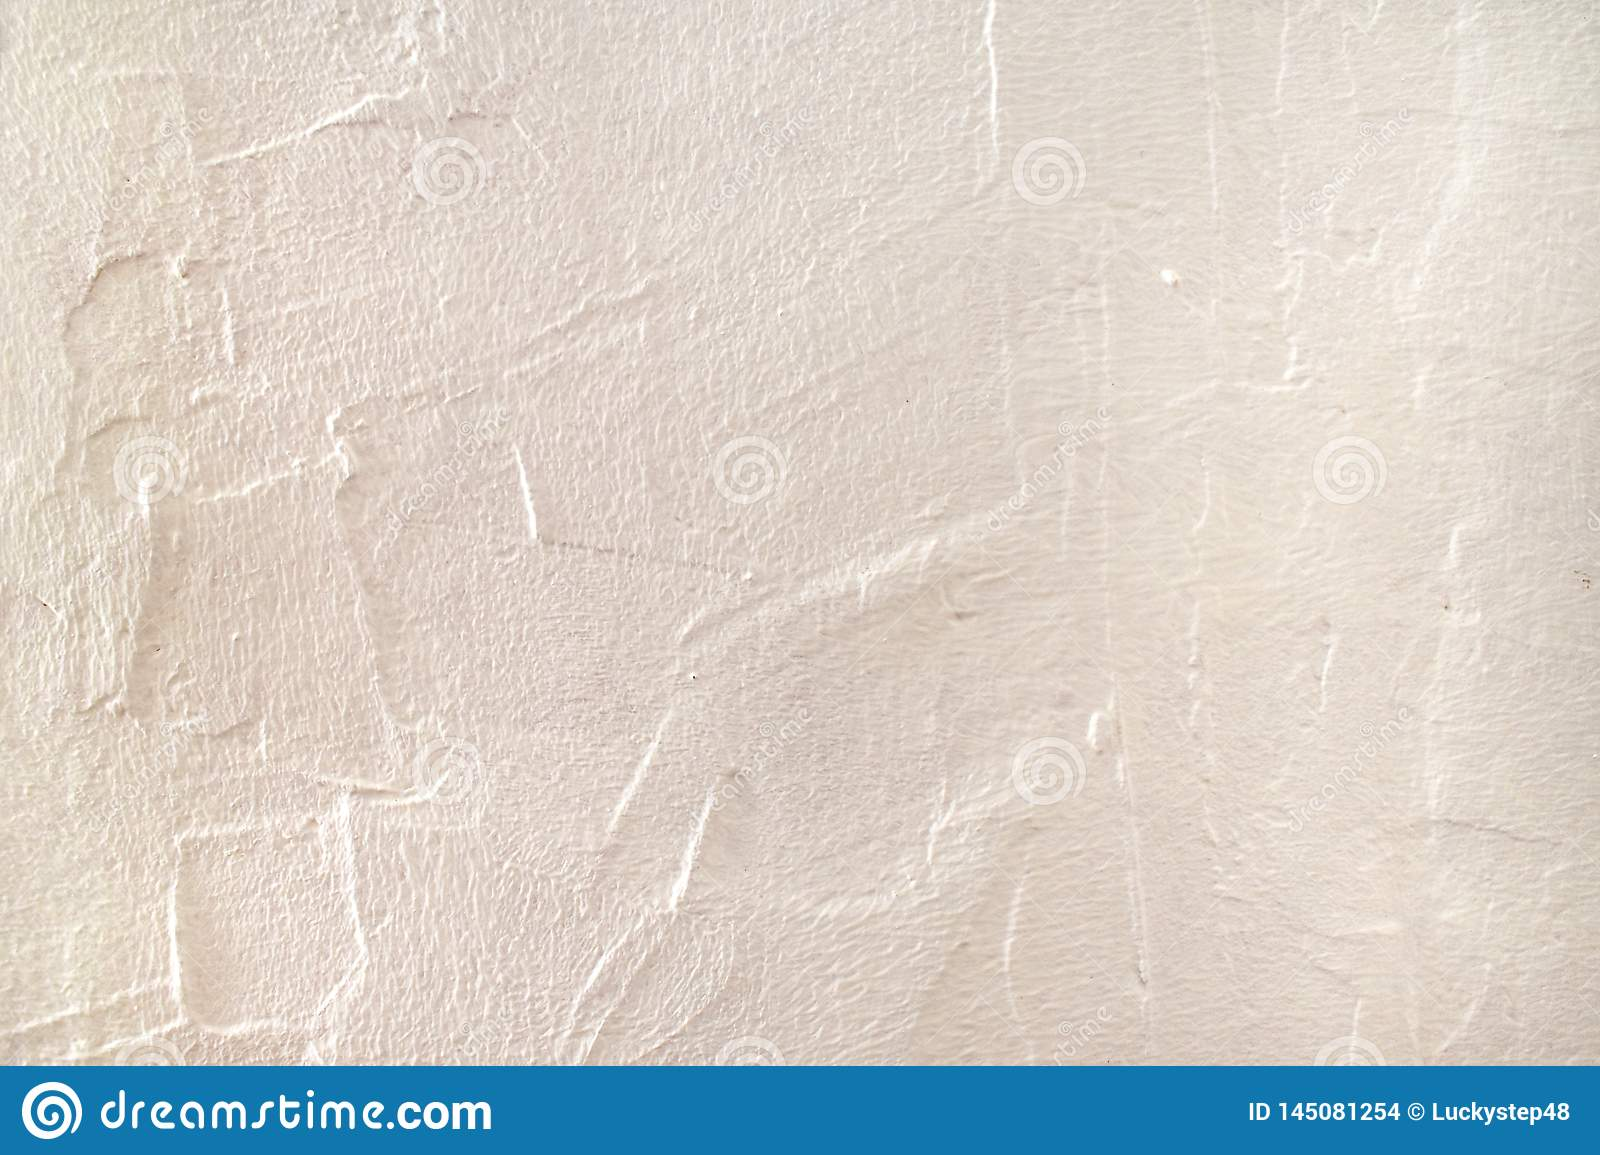 Rough surface plaster texture. Peachy pink light orange color background with copy space. Decorative plastering textured